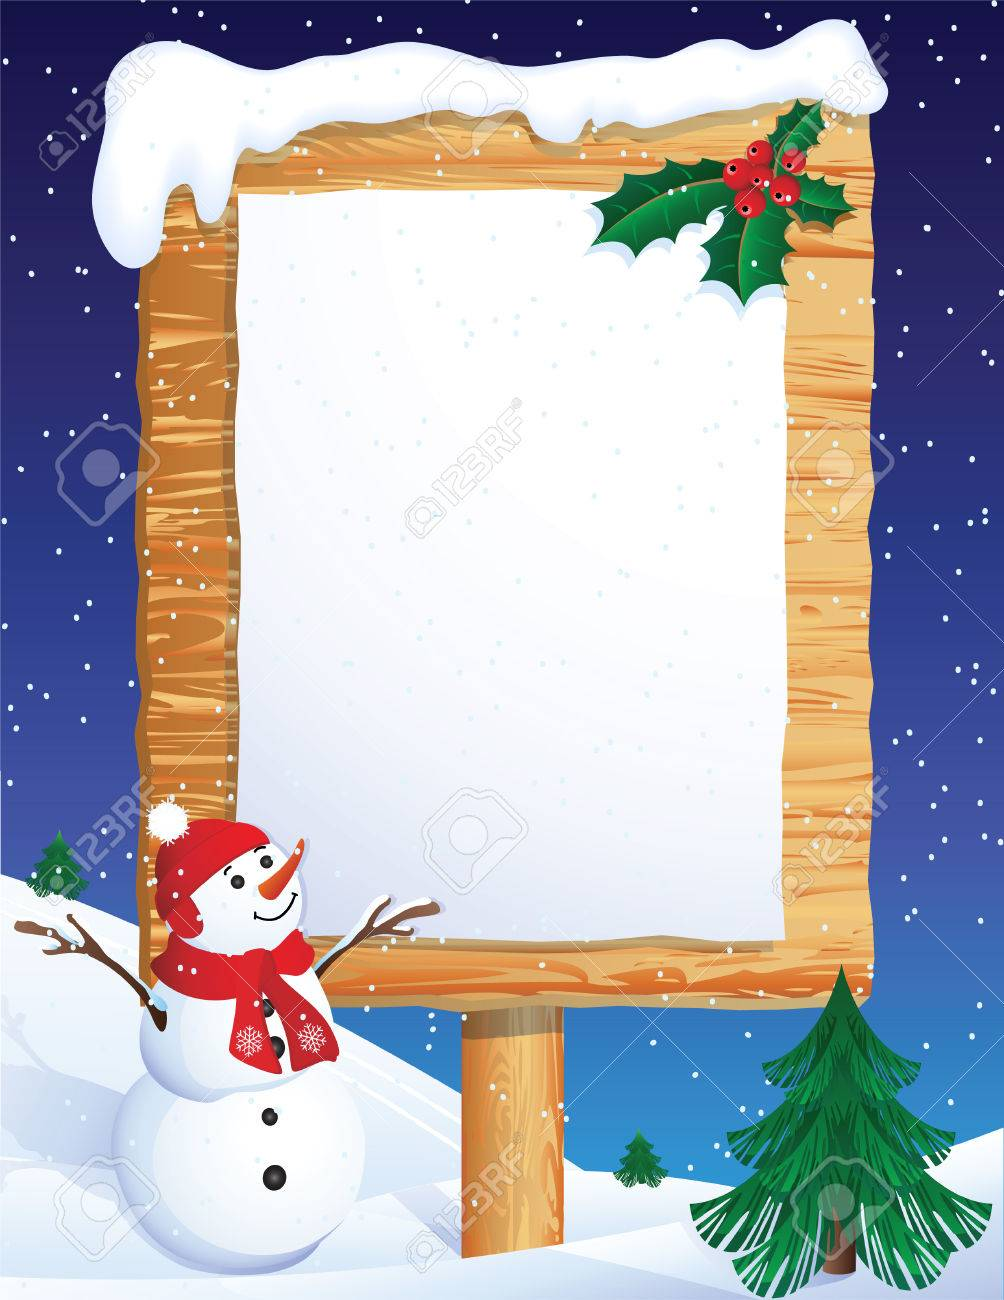 Vector illustration - snowman whis winter background Stock Vector - 2055976